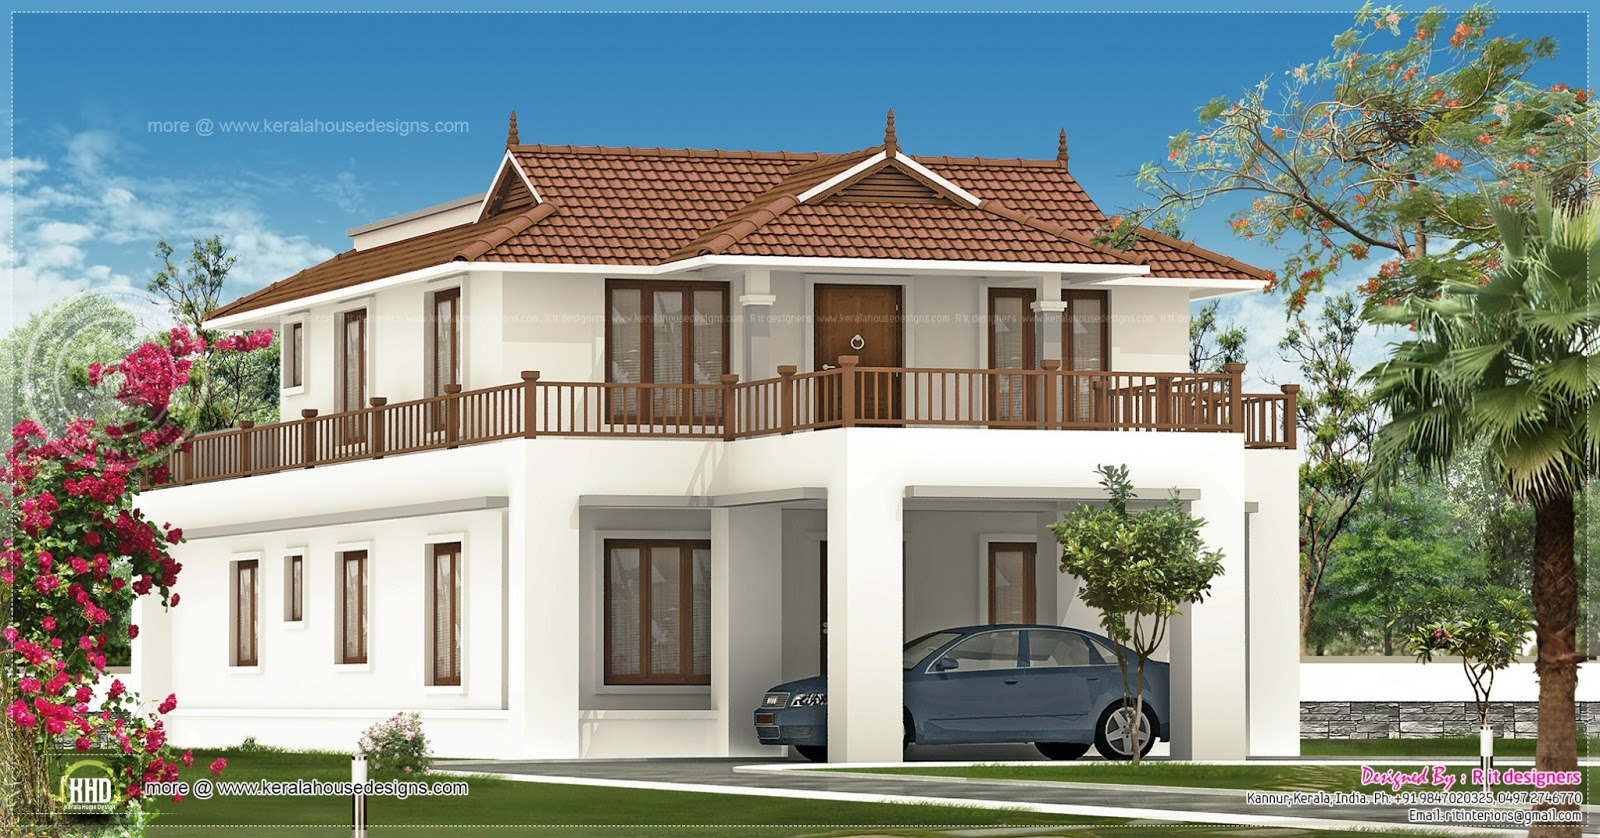 2820 square feet house exterior design home kerala plans for Indian home exterior design photos middle class